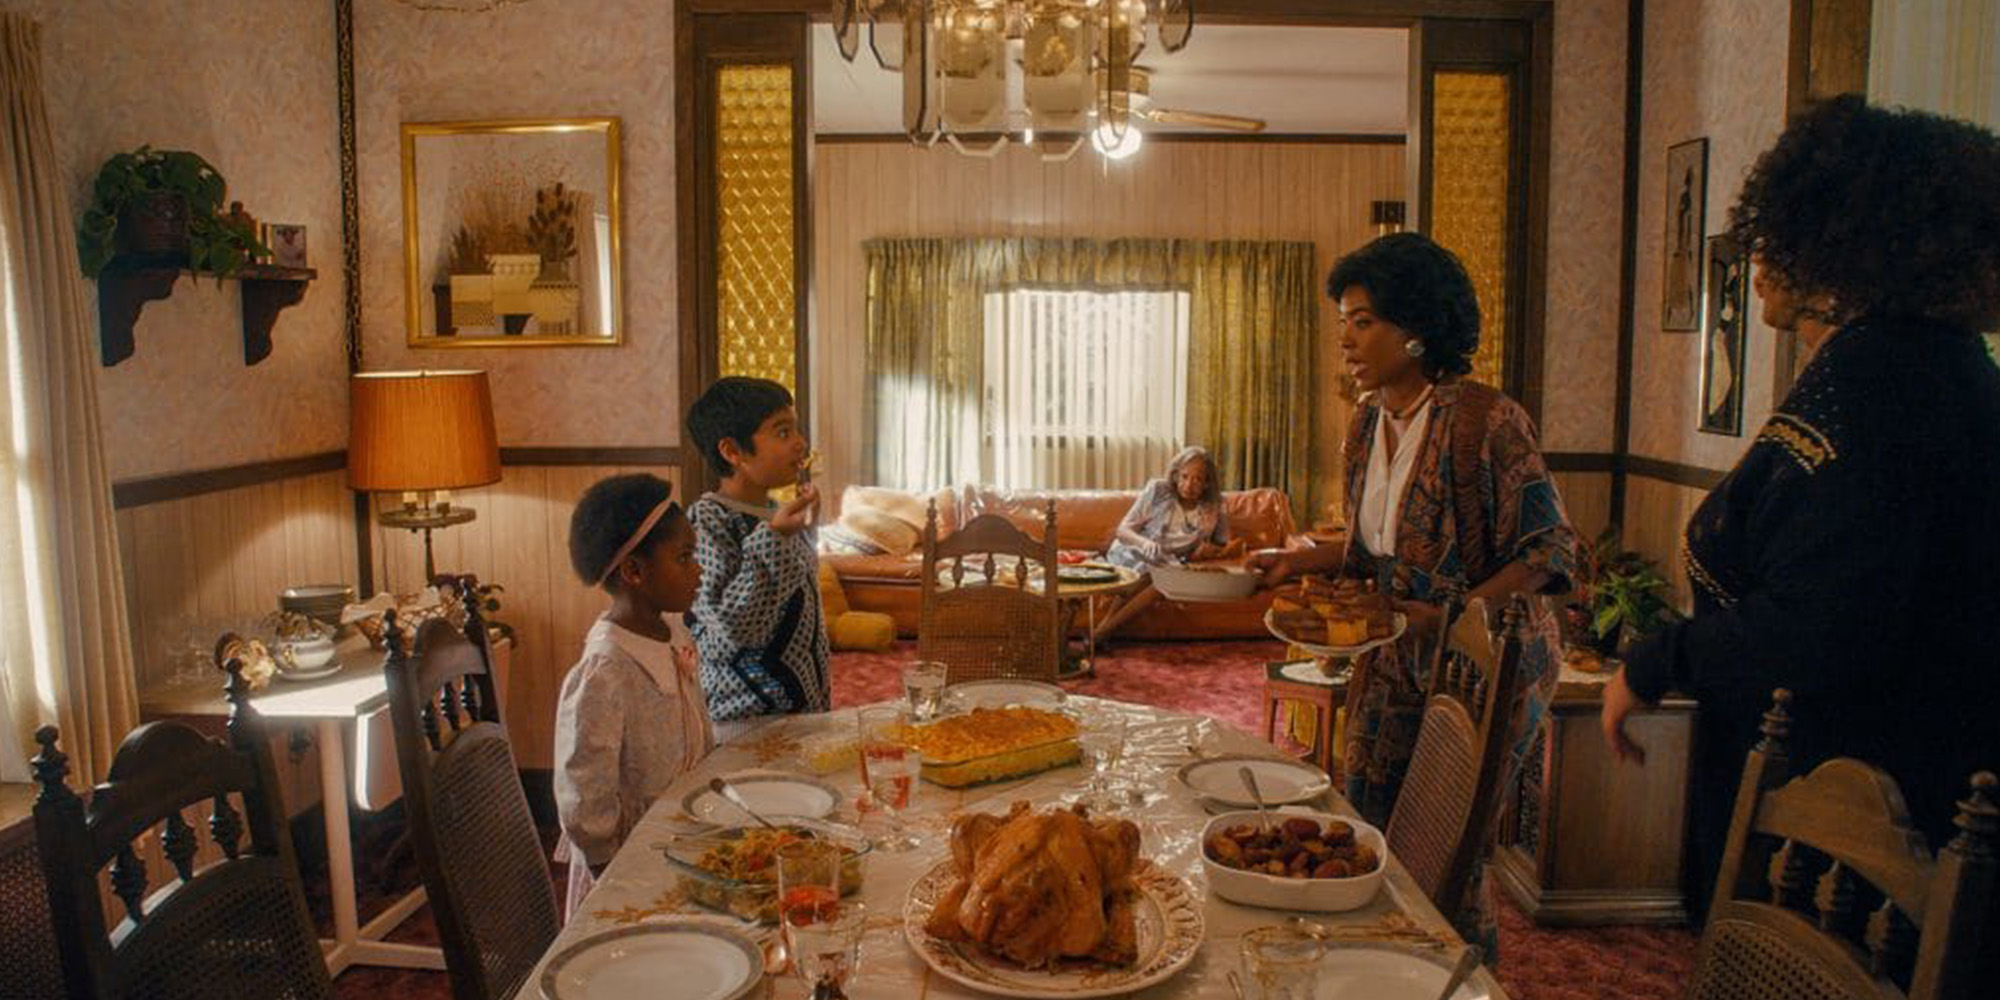 Watching the 'Master of None' Thanksgiving Episode Should Be a Queer Holiday Tradition